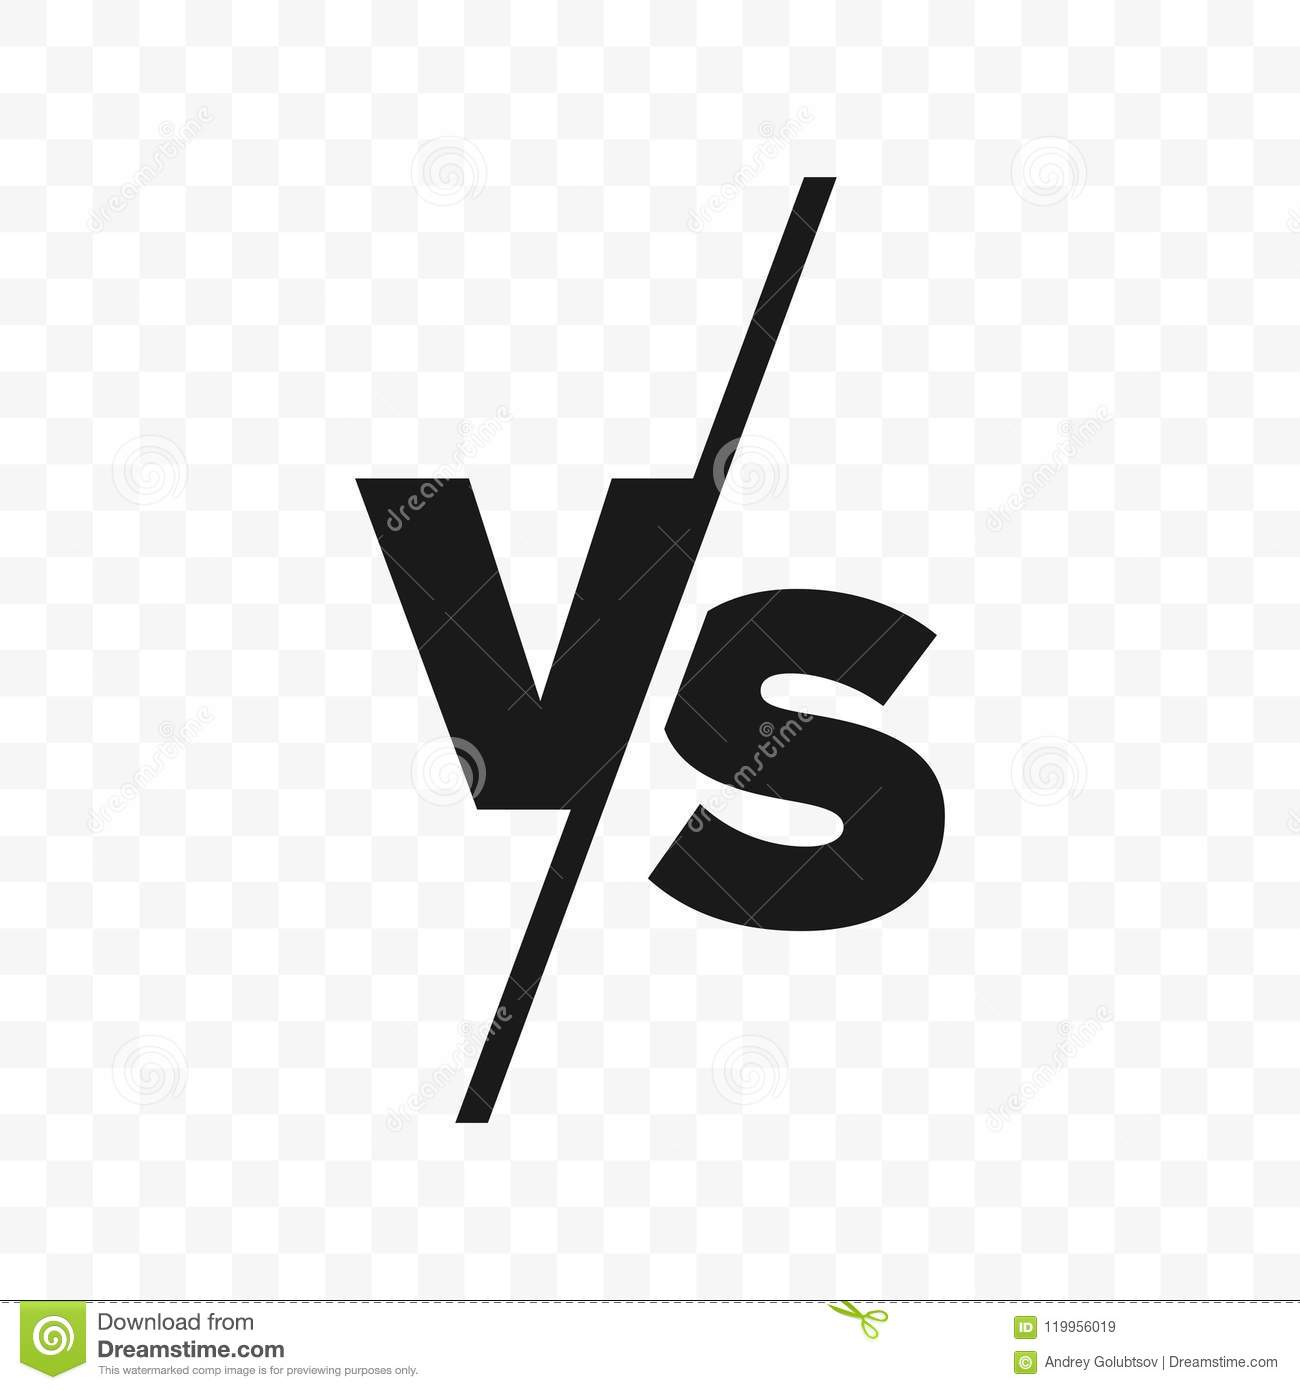 VS Versus Letters Vector Icon Stock Vector - Illustration of ...